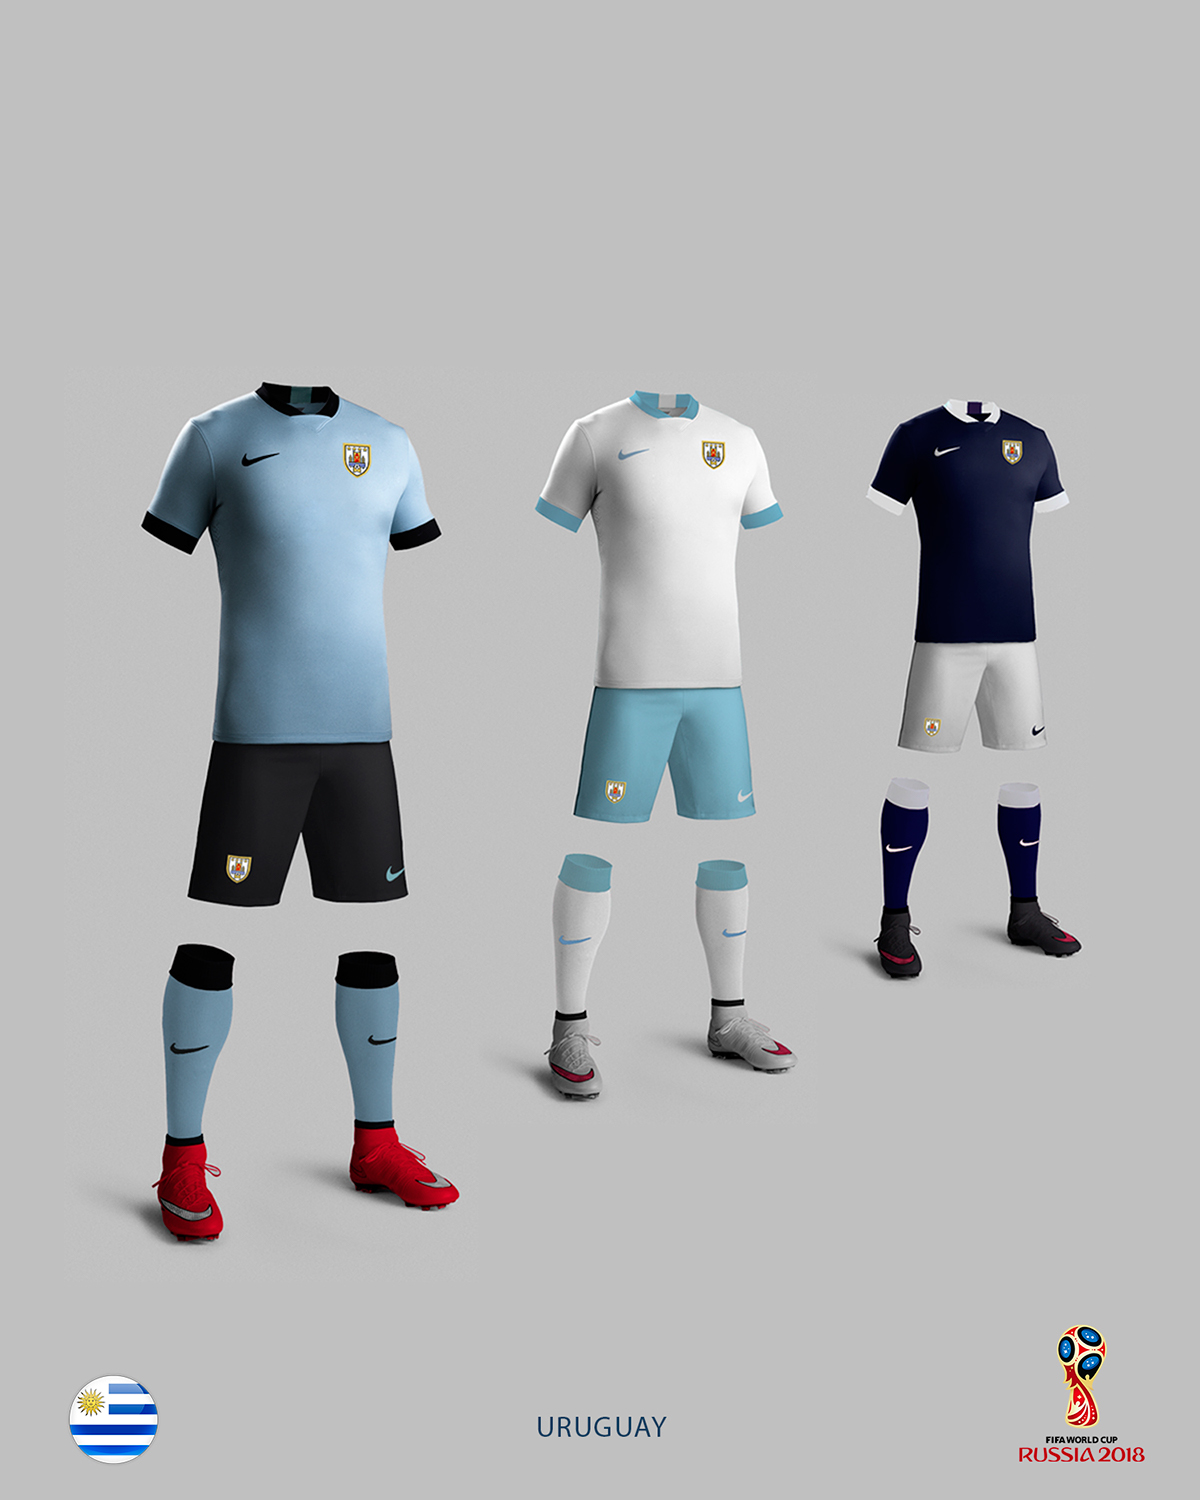 new concept a402f d27bc Uruguay Soccer Kit - 2018 FIFA World Cup Russia on Behance